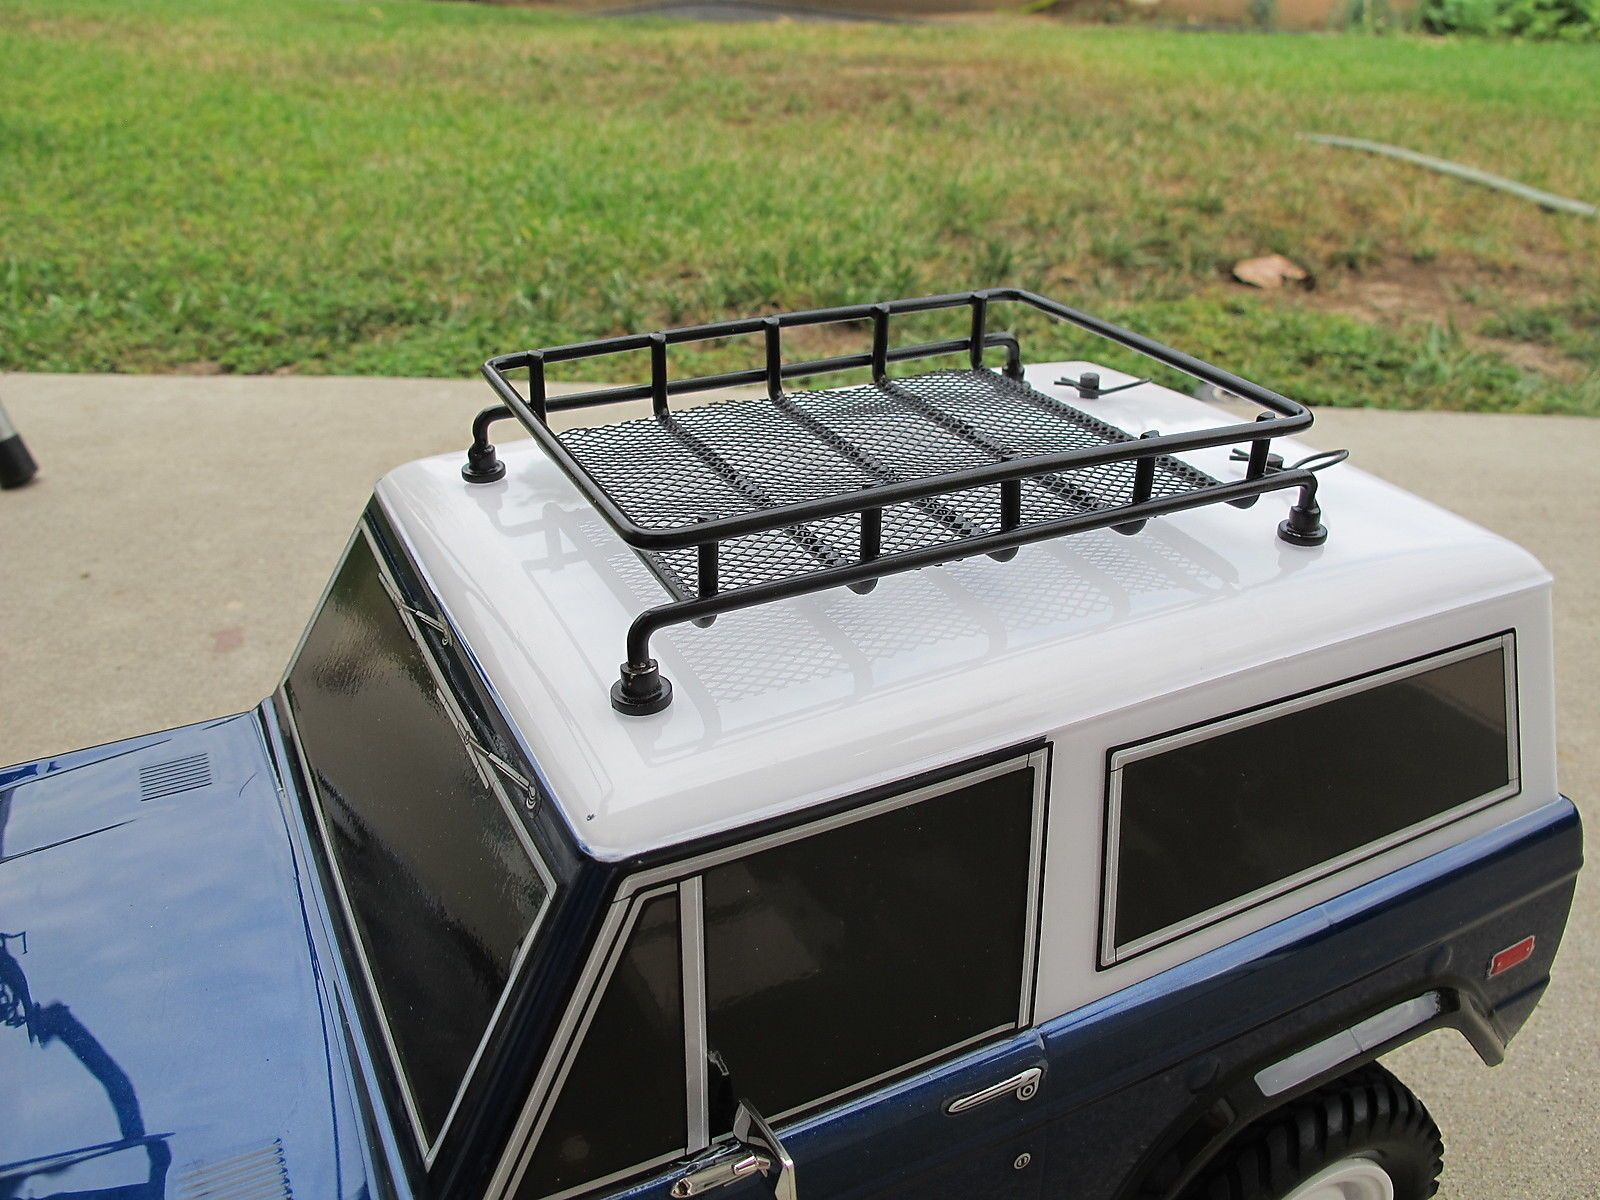 Metal Roof Rack 1 10 Rc Tamiya Cc01 Axial Scx10 Jeep Wrangler Yj Off Road Cr 01 Roof Rack Jeep Wrangler Yj Metal Roof